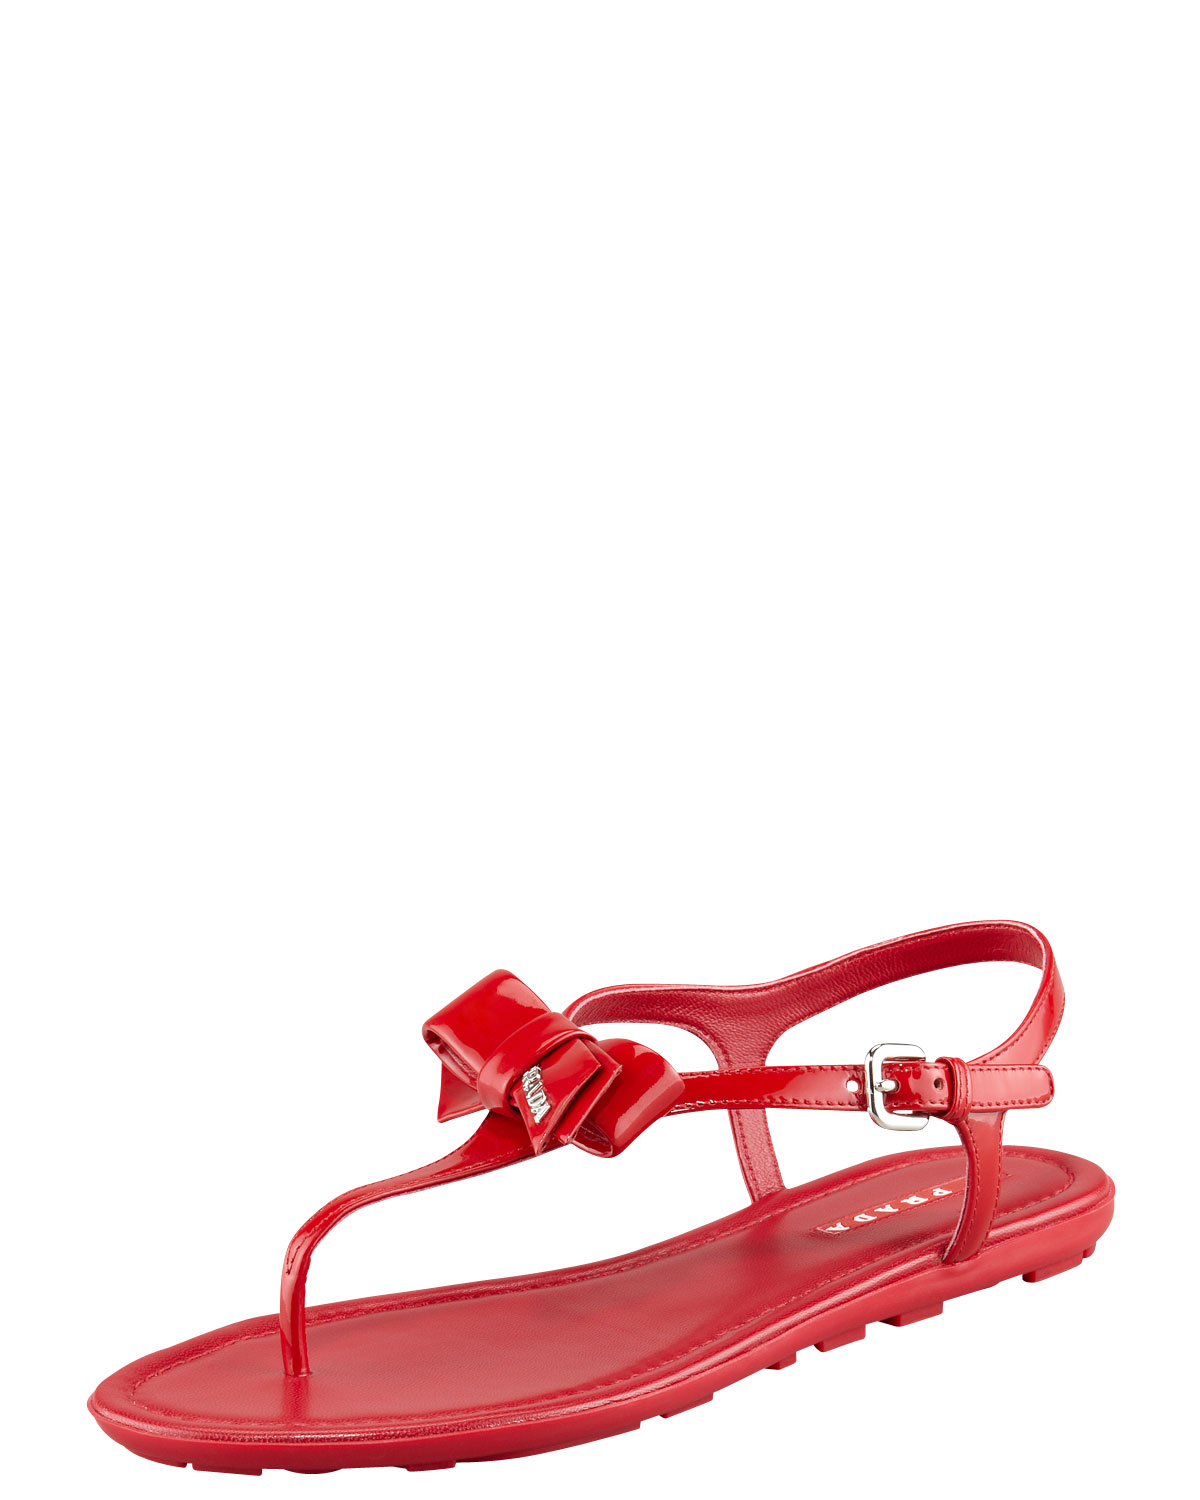 Lyst Prada Patent Leather Bow Thong Sandal In Red